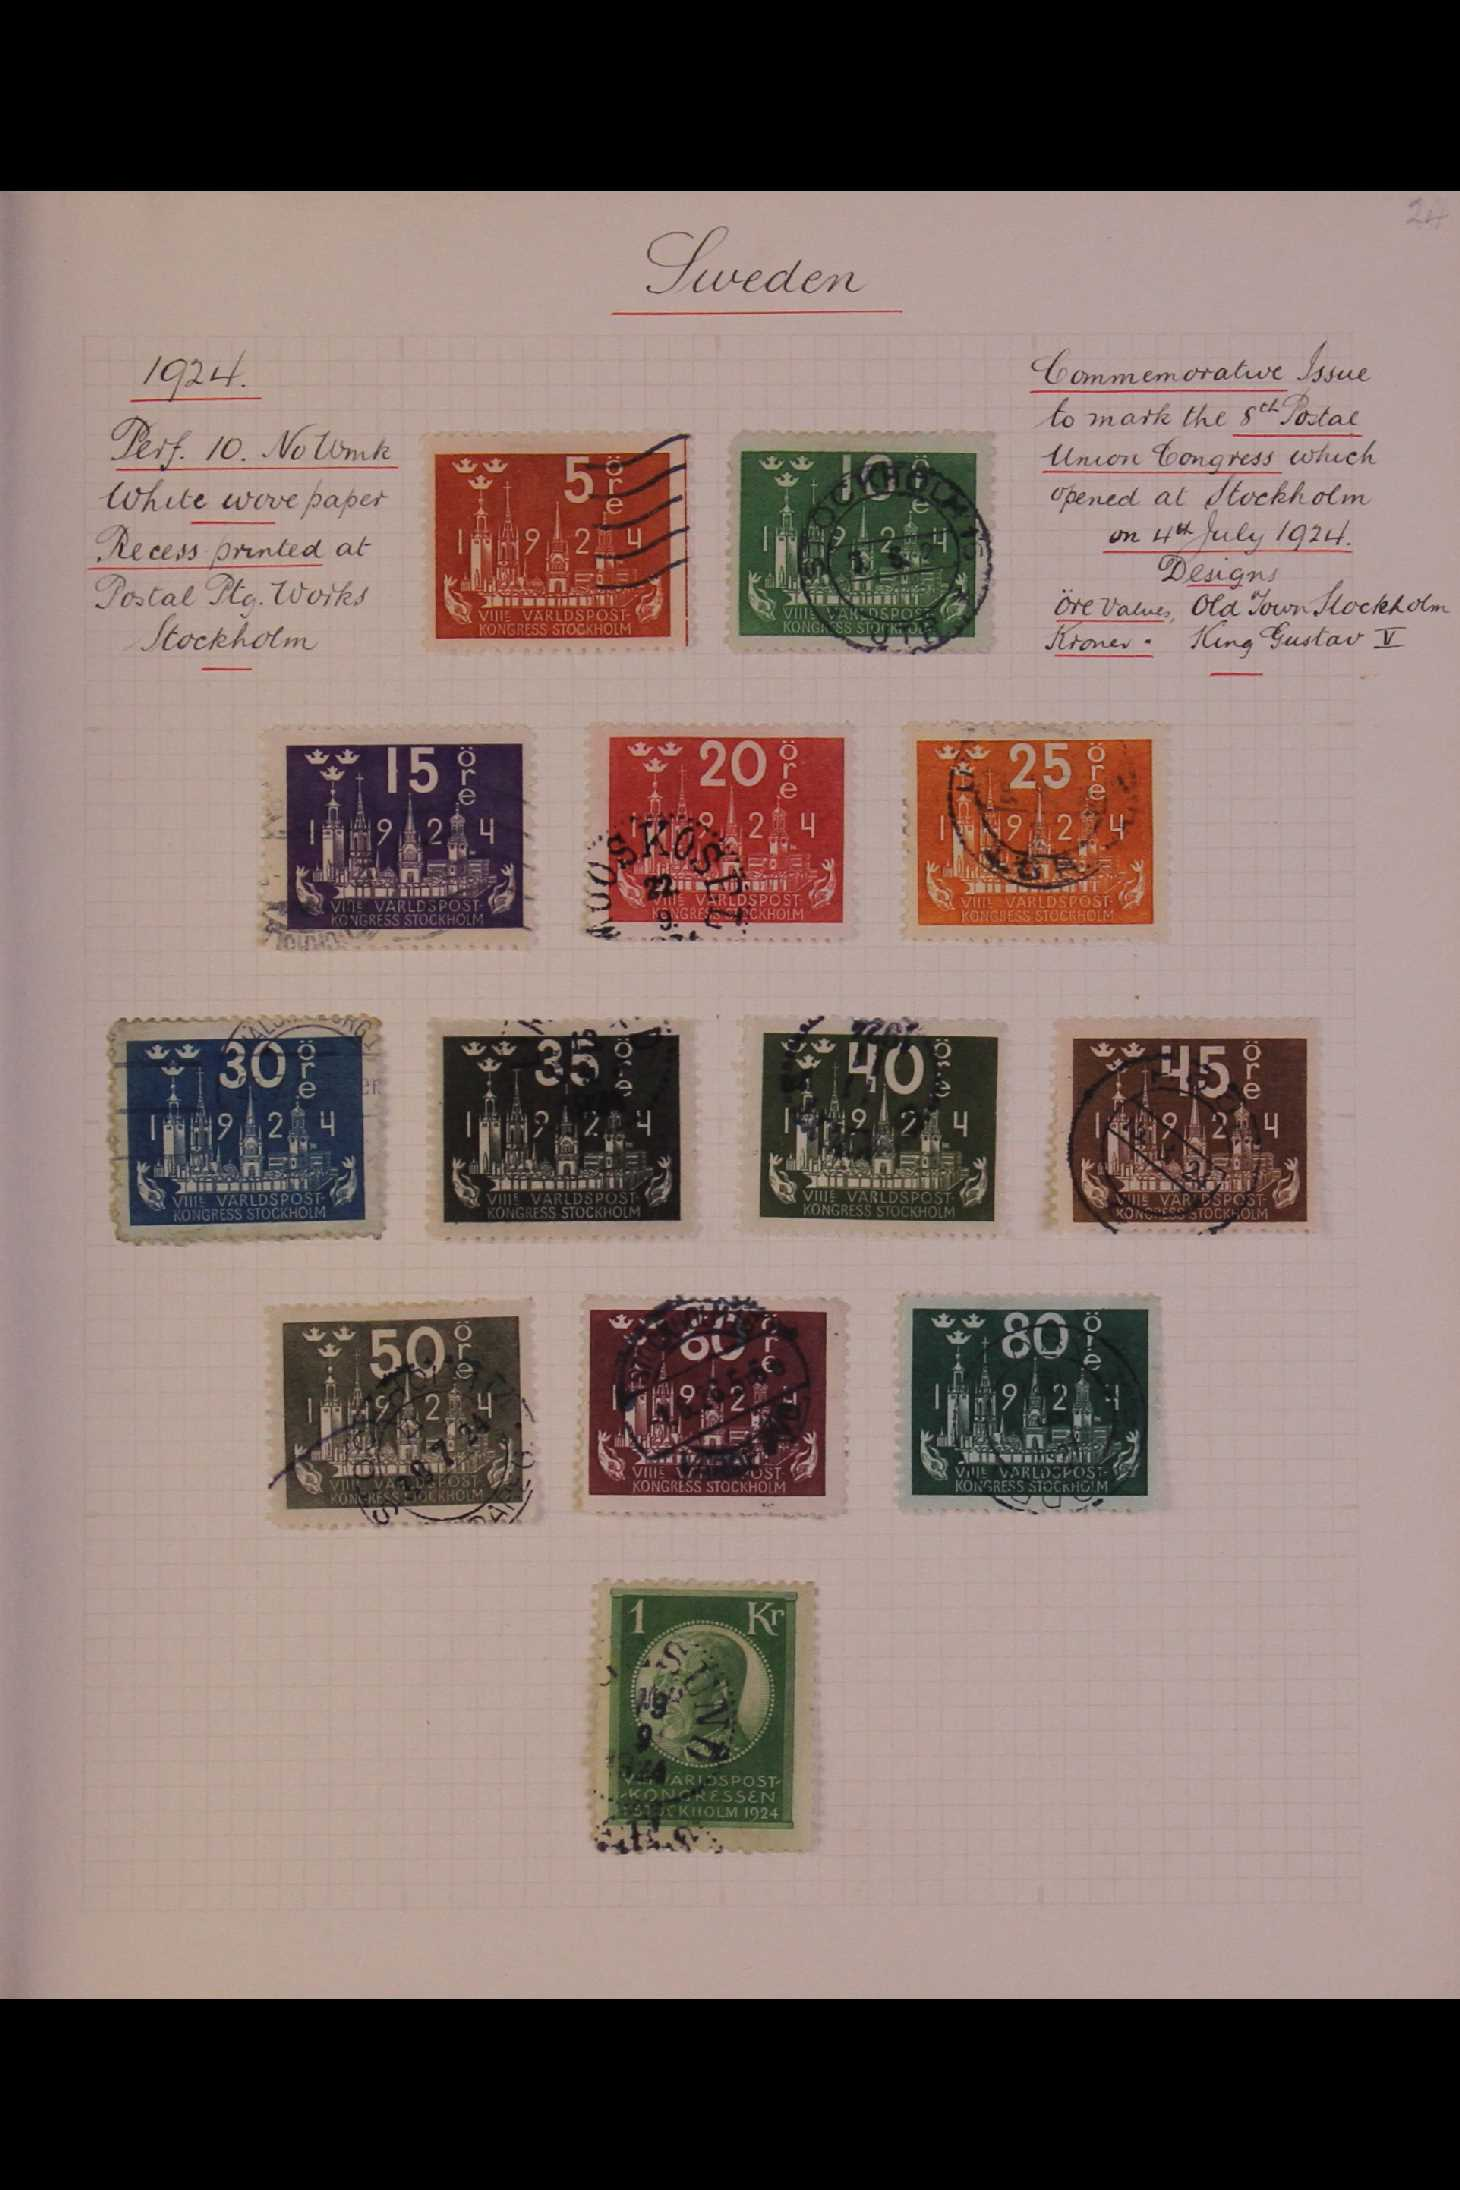 SWEDEN 1903-1966 USED COLLECTION incl. 1903 5k GPO, 1910-19 wmk Crown set, 1916 Landstorm surcharges - Image 8 of 12